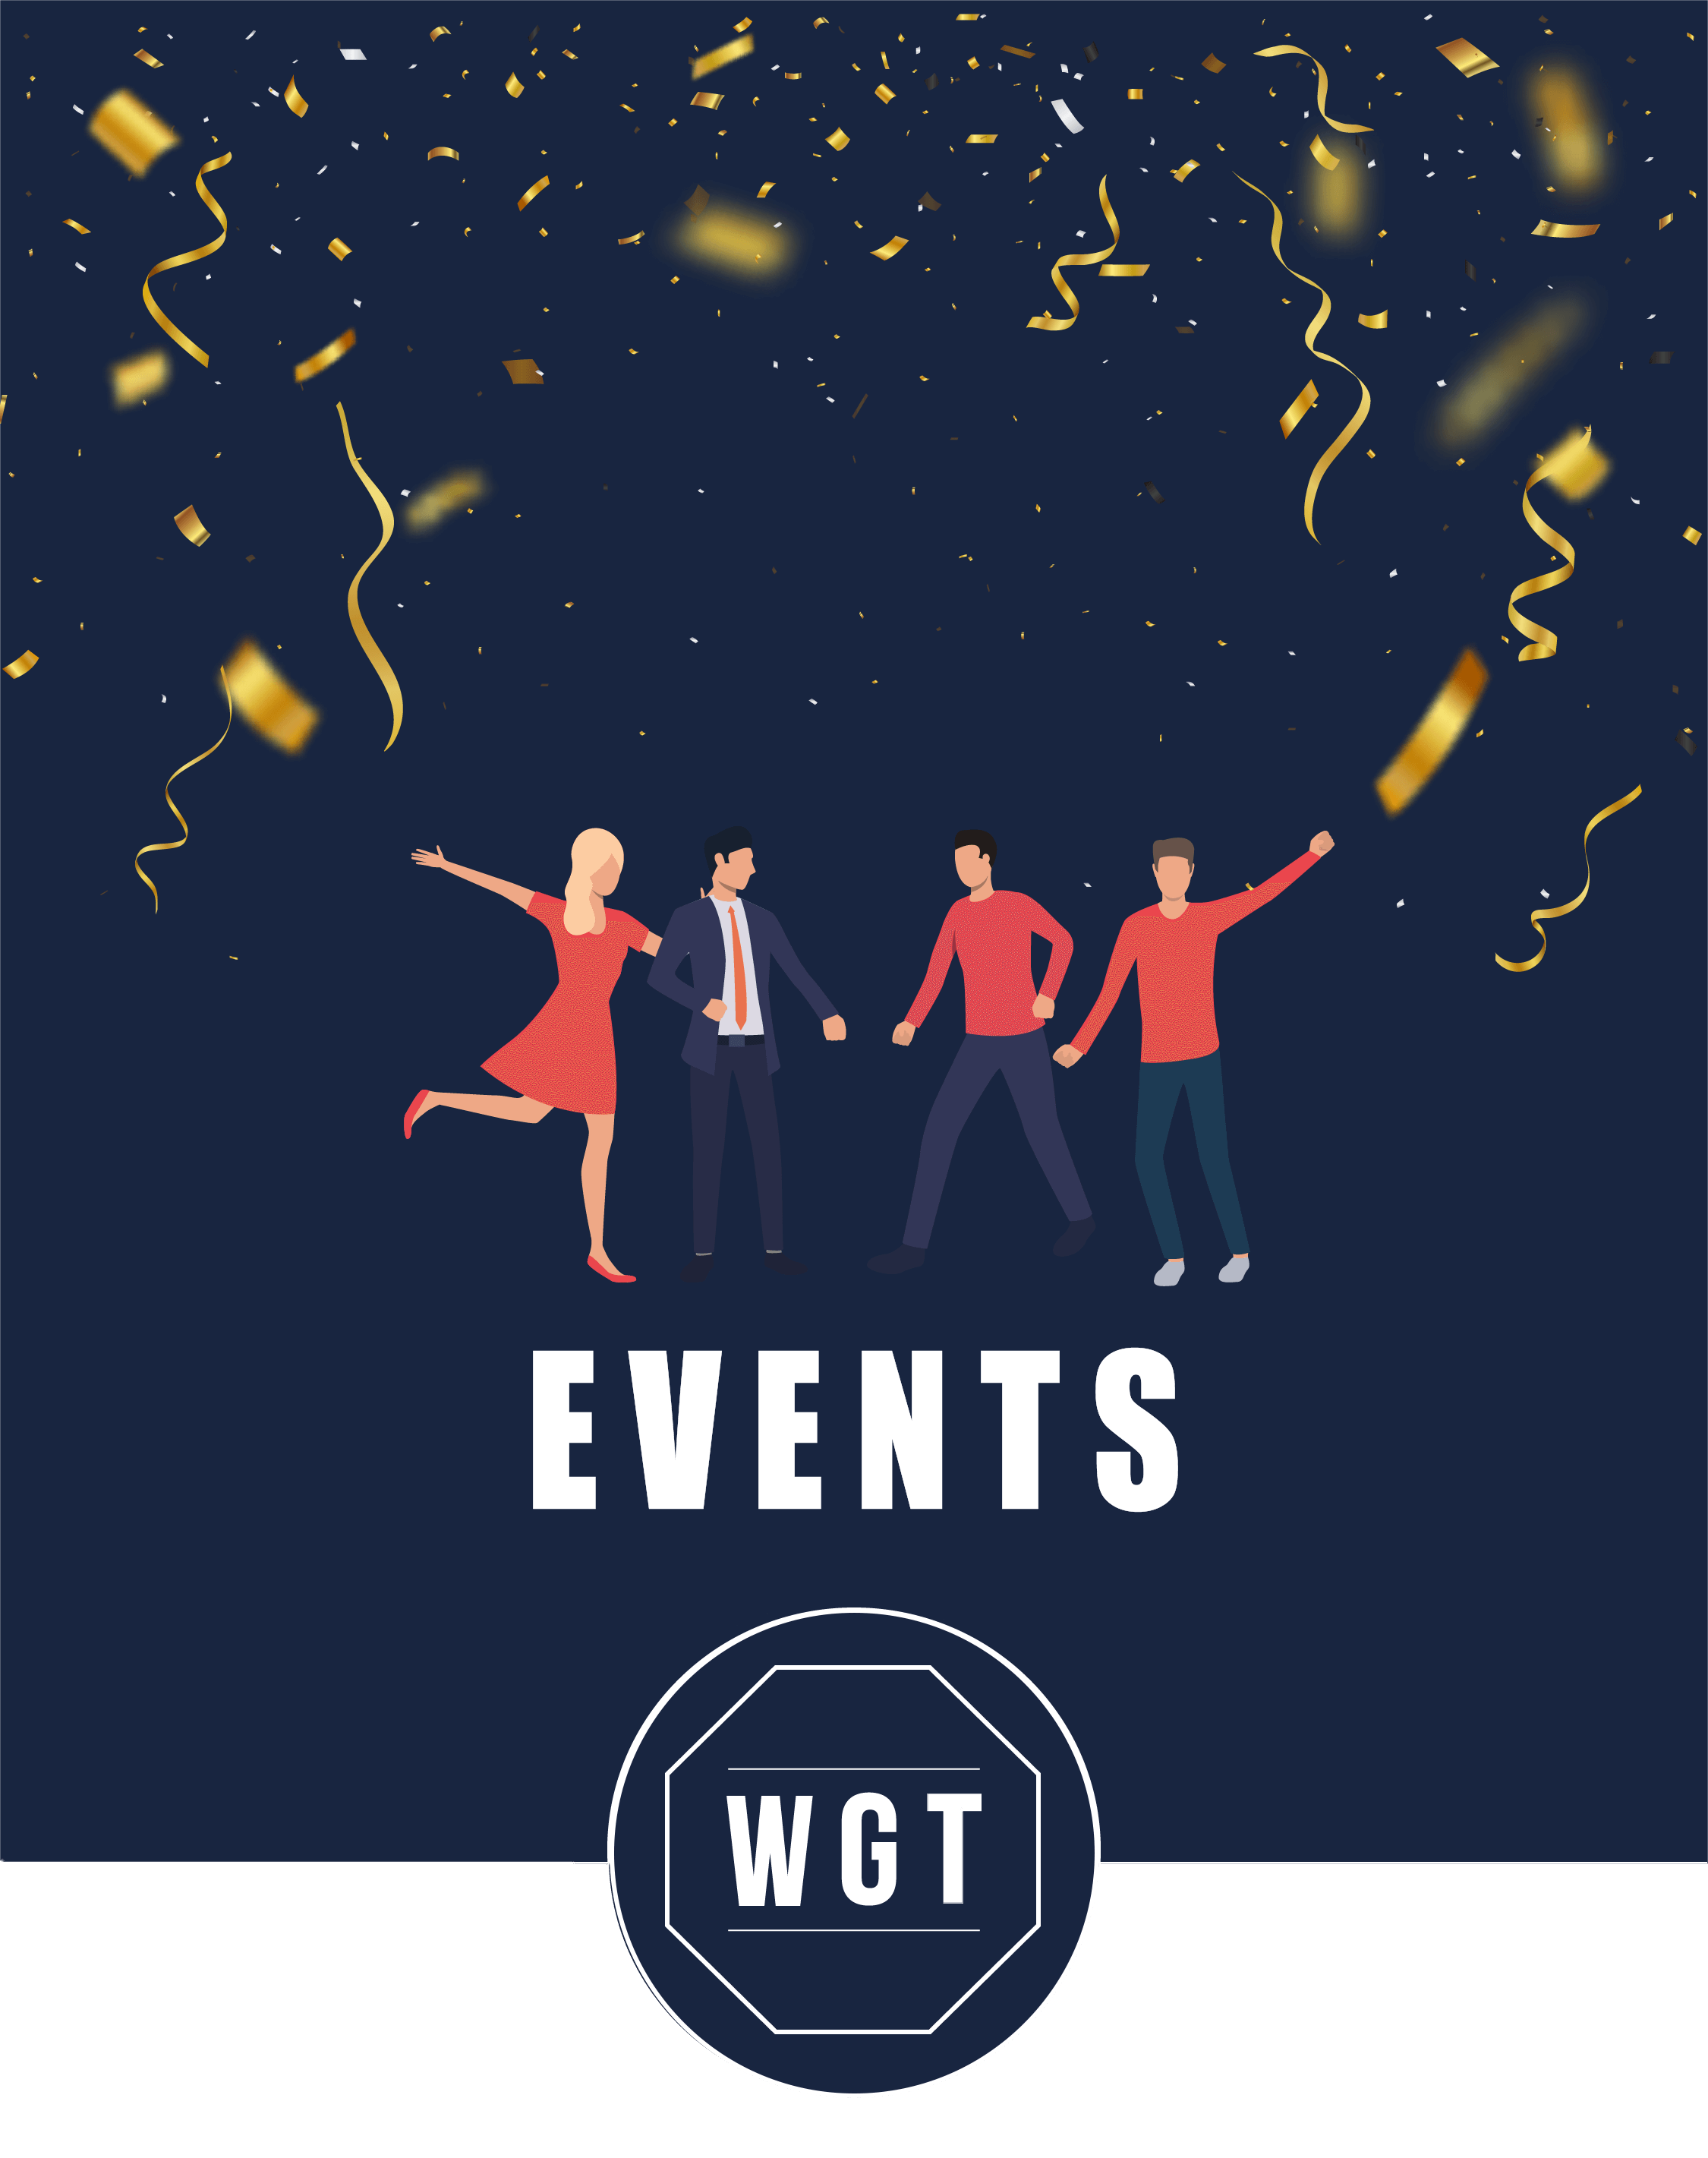 events image for wegotthis